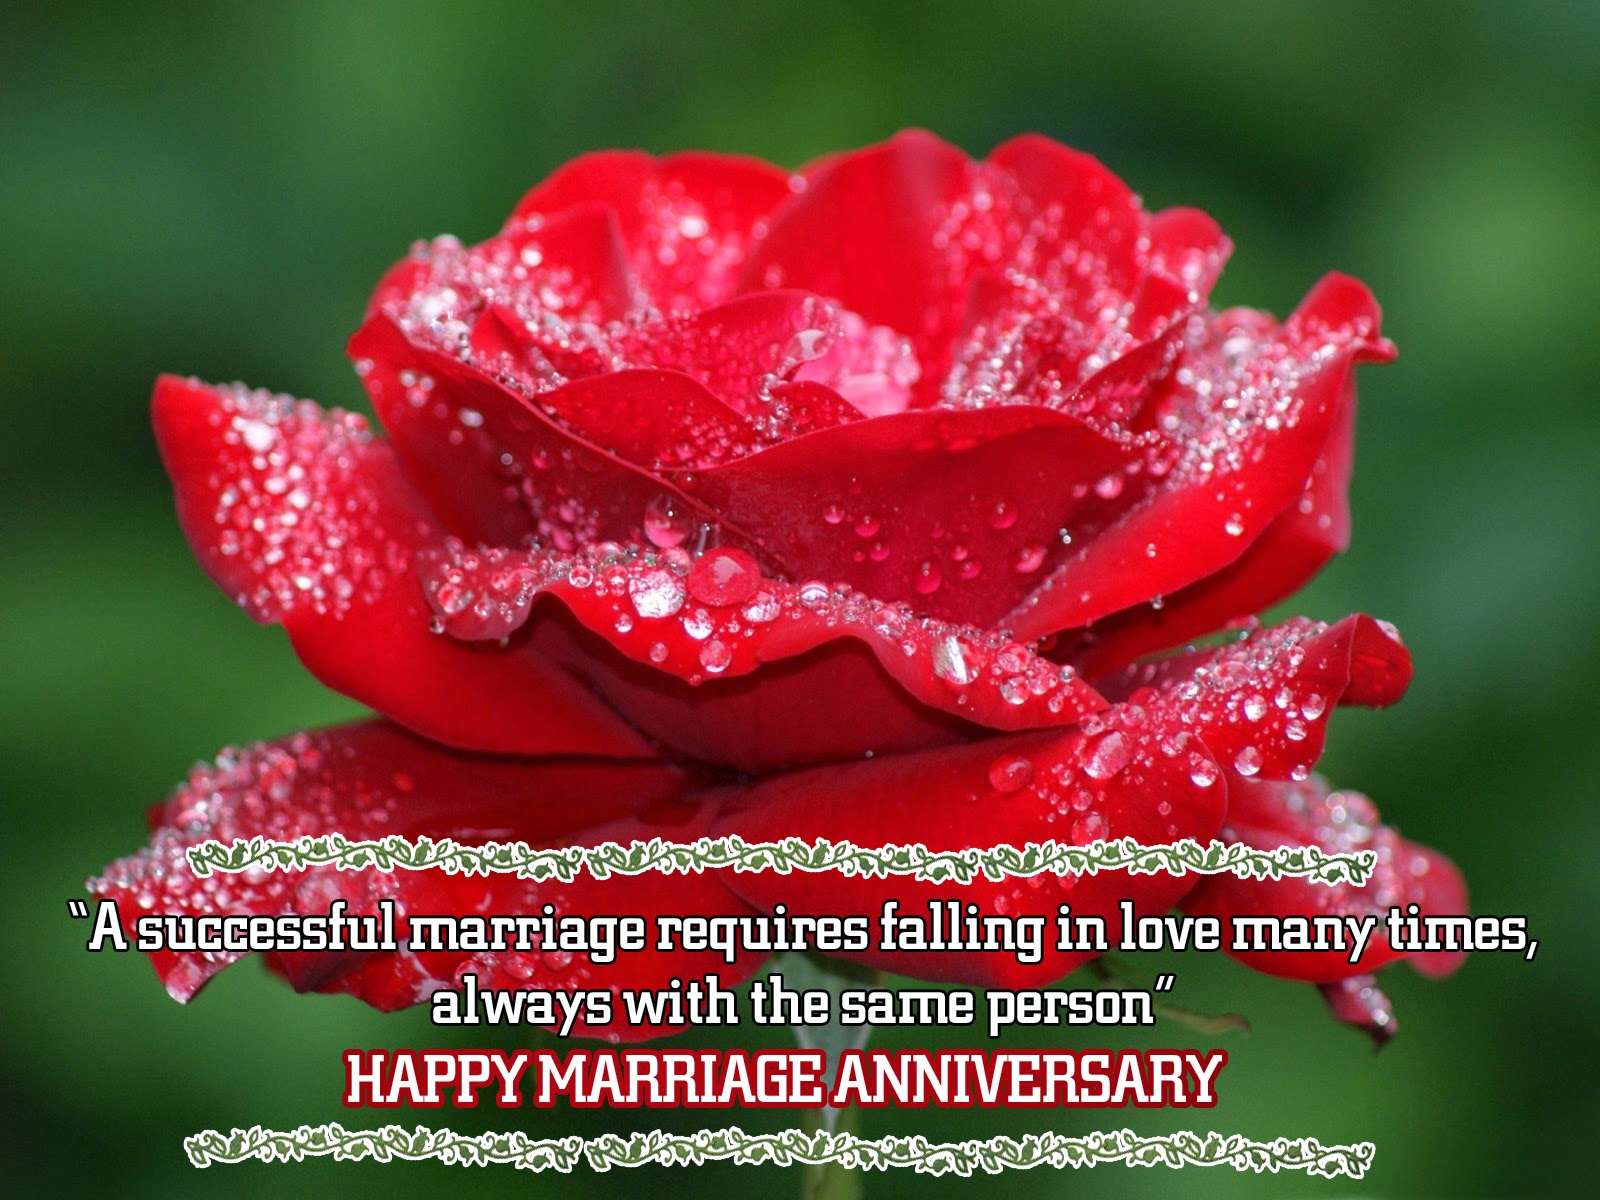 Cute Roses Wallpapers With Wordings Successful Marriage Wishes Anniversary Greetings Pics